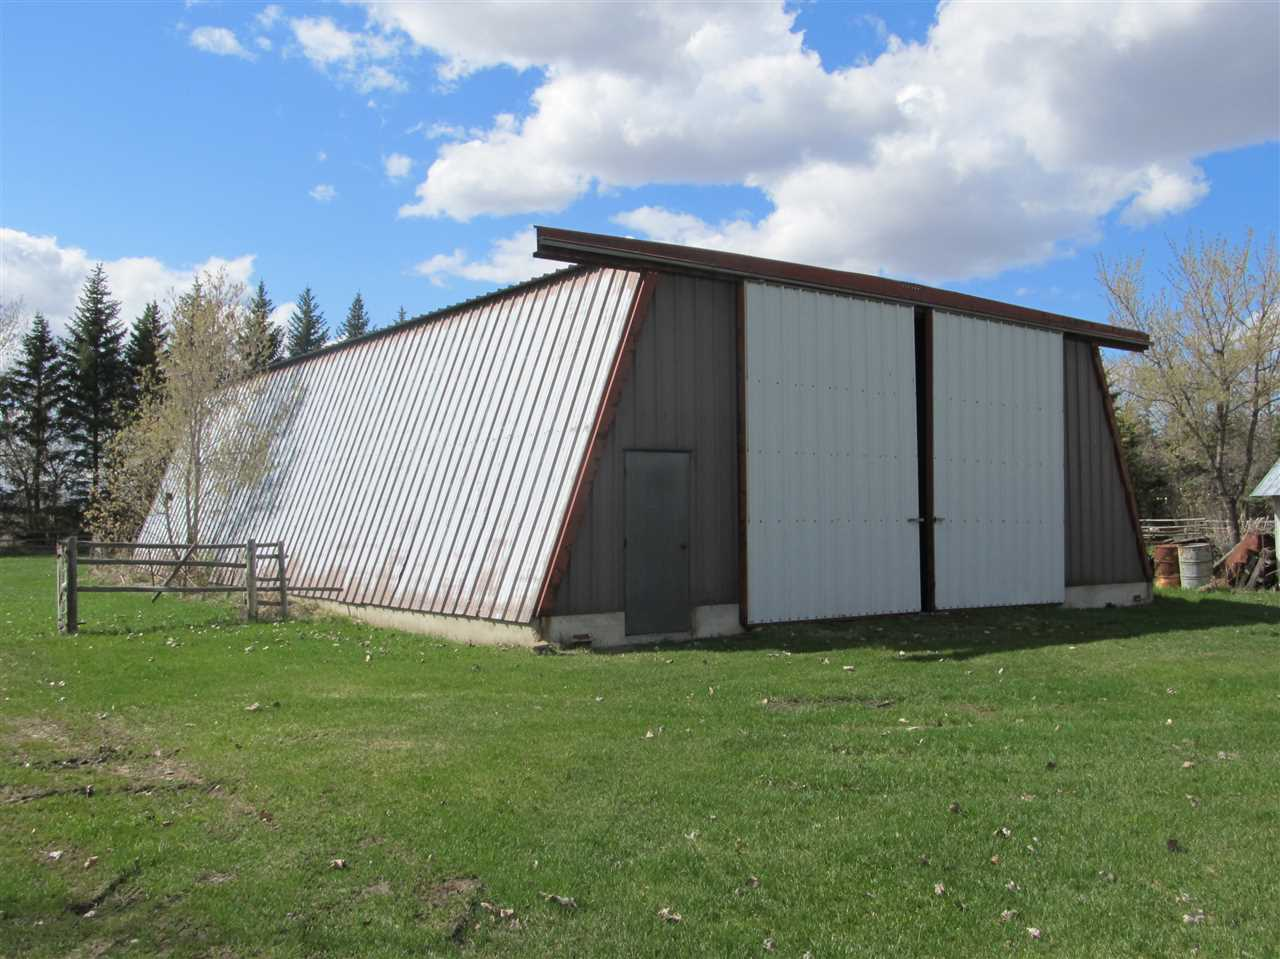 Photo 17: 25308 Twp Rd 570: Rural Sturgeon County House for sale : MLS(r) # E4063269